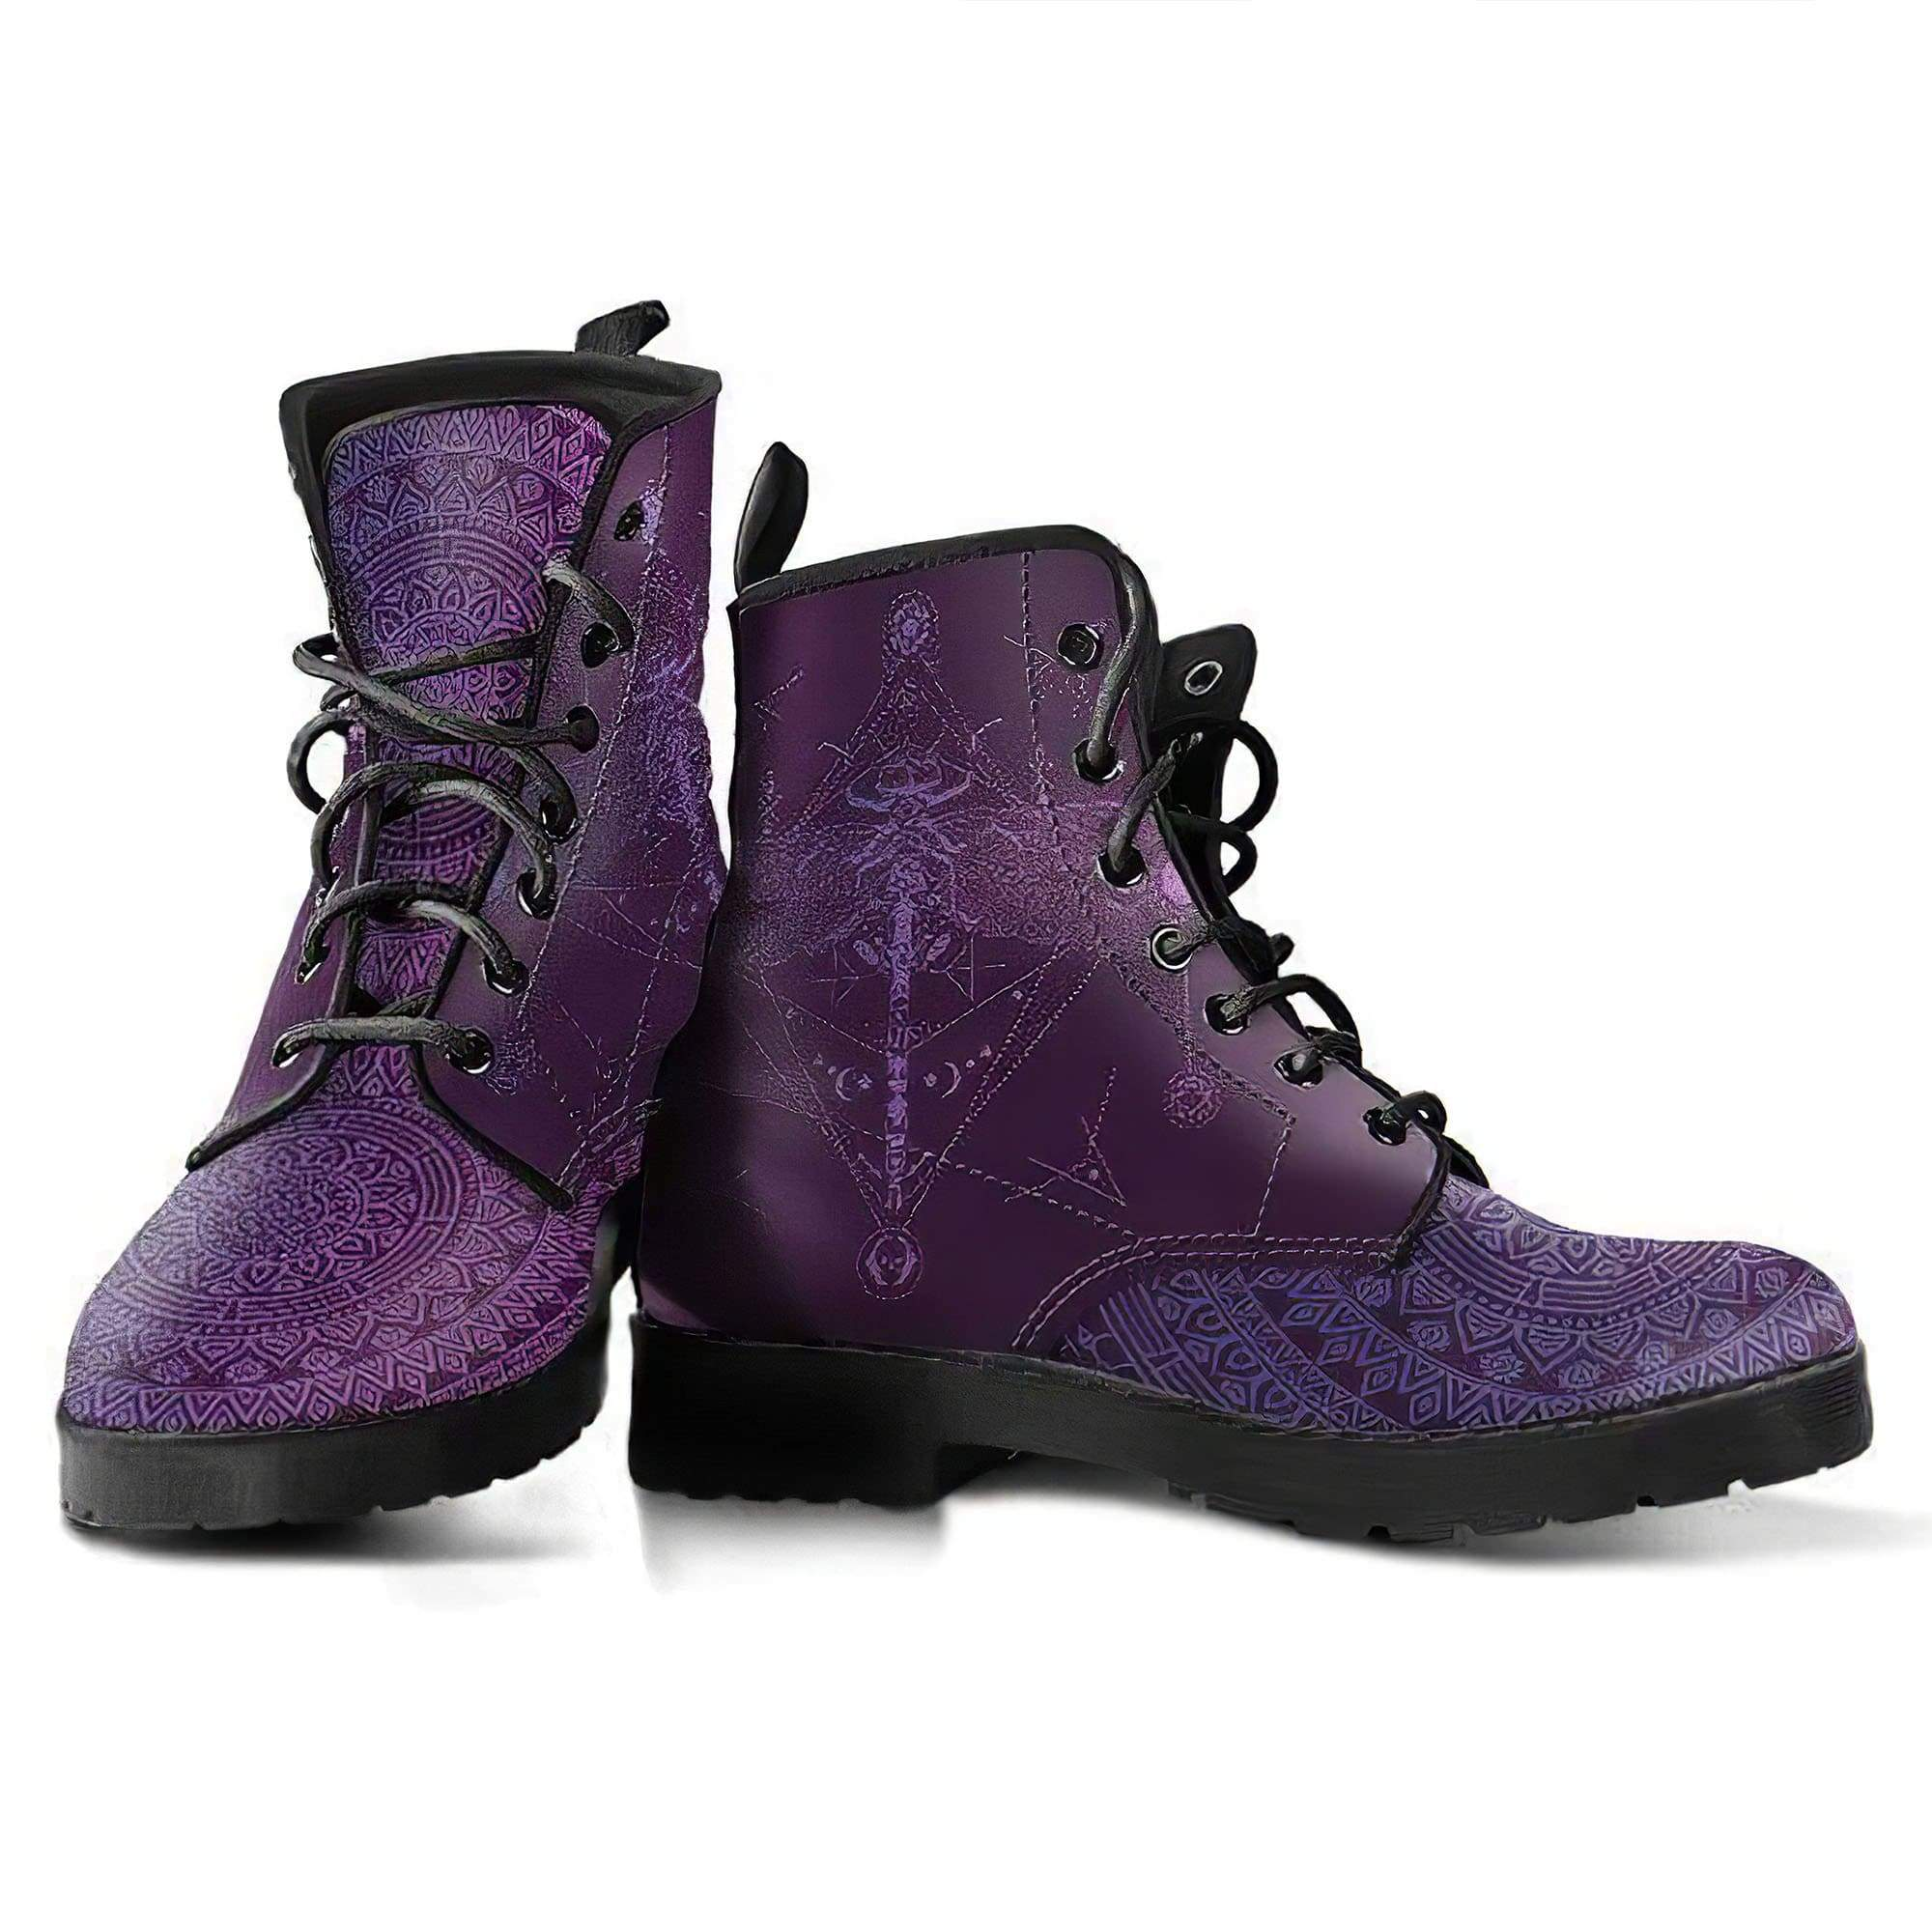 Spiritual Dragonfly Handcrafted Boots Women's Leather Boots